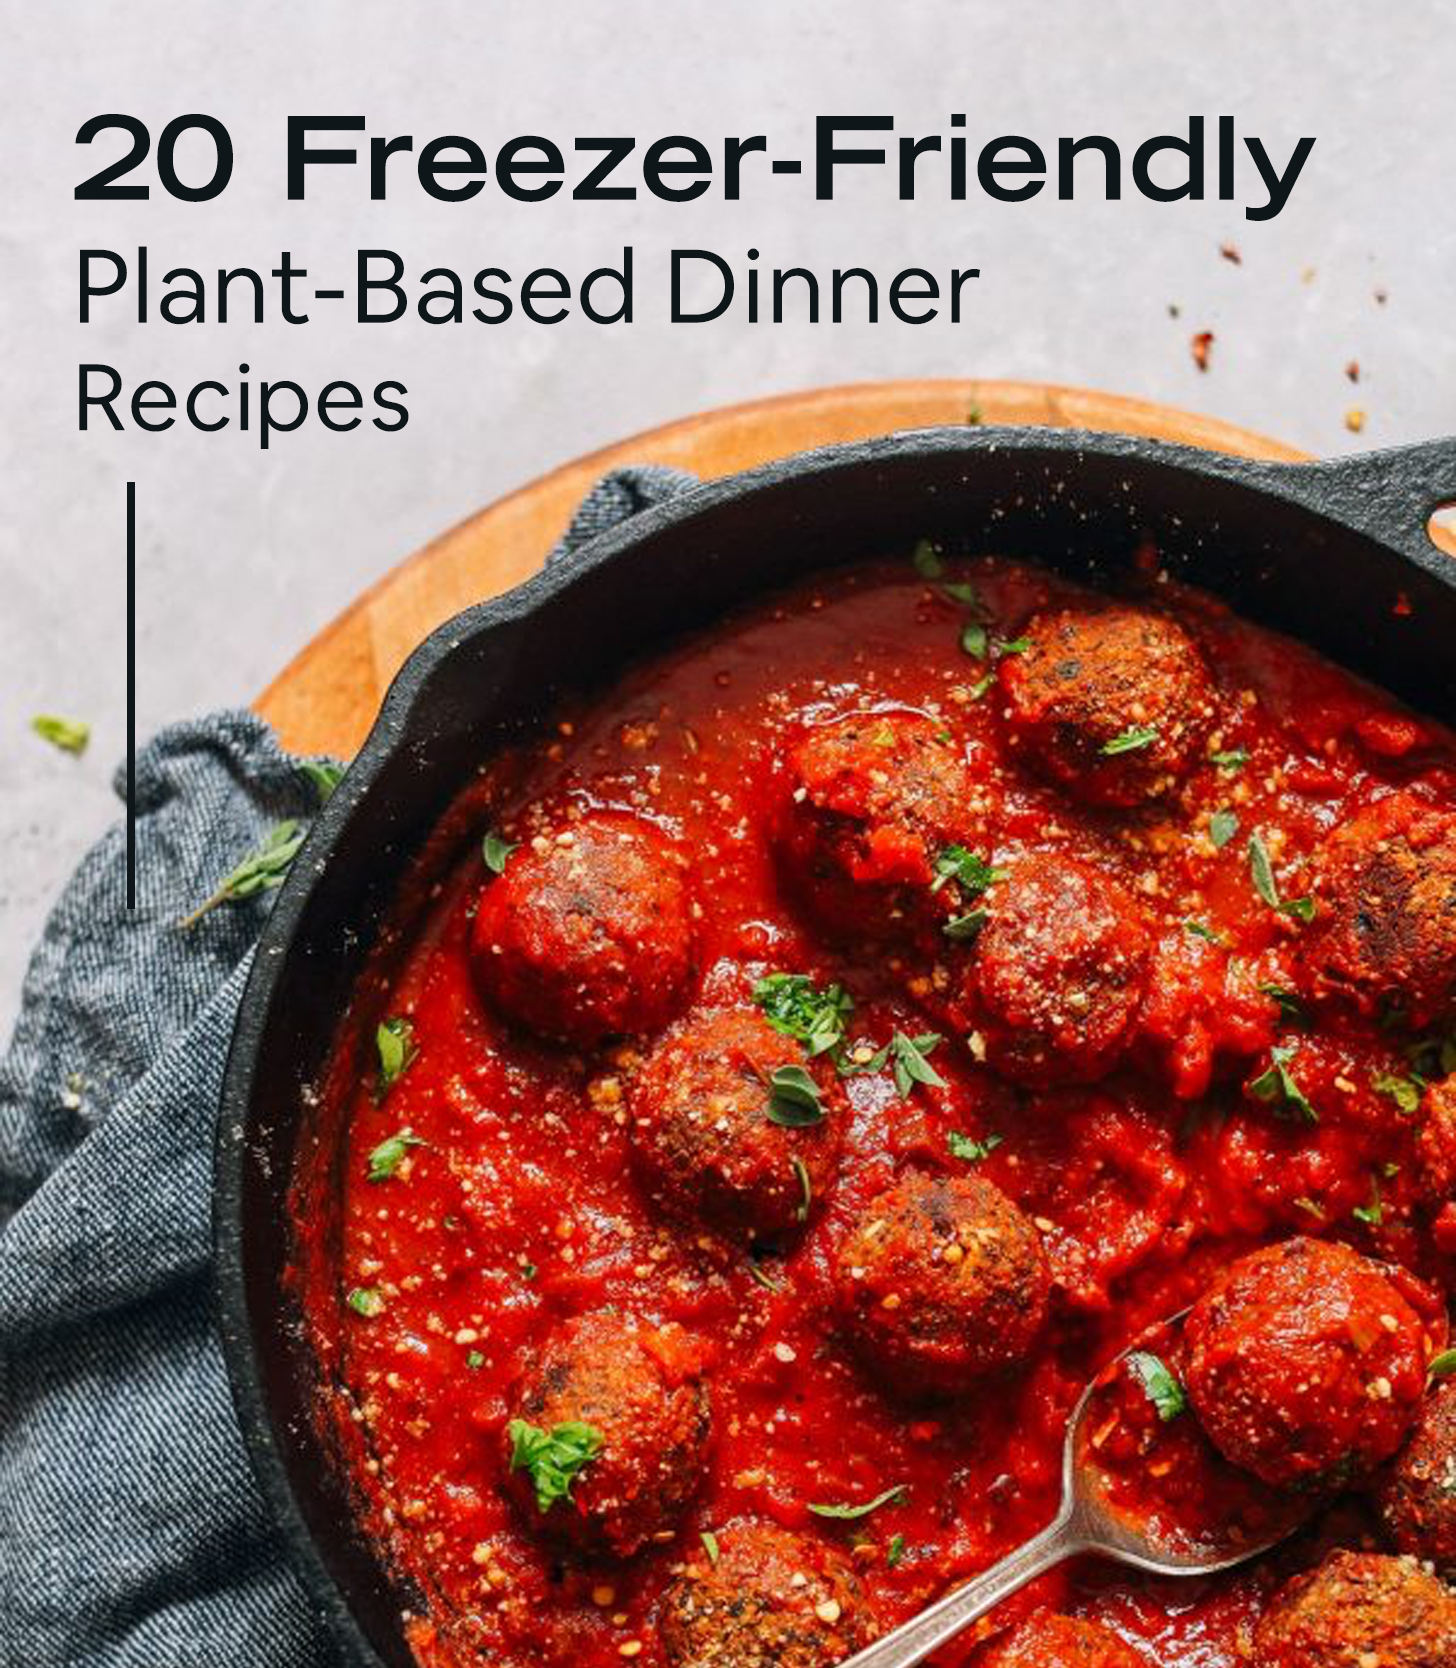 Skillet of vegan meatballs for our roundup of vegan freezer friendly meals